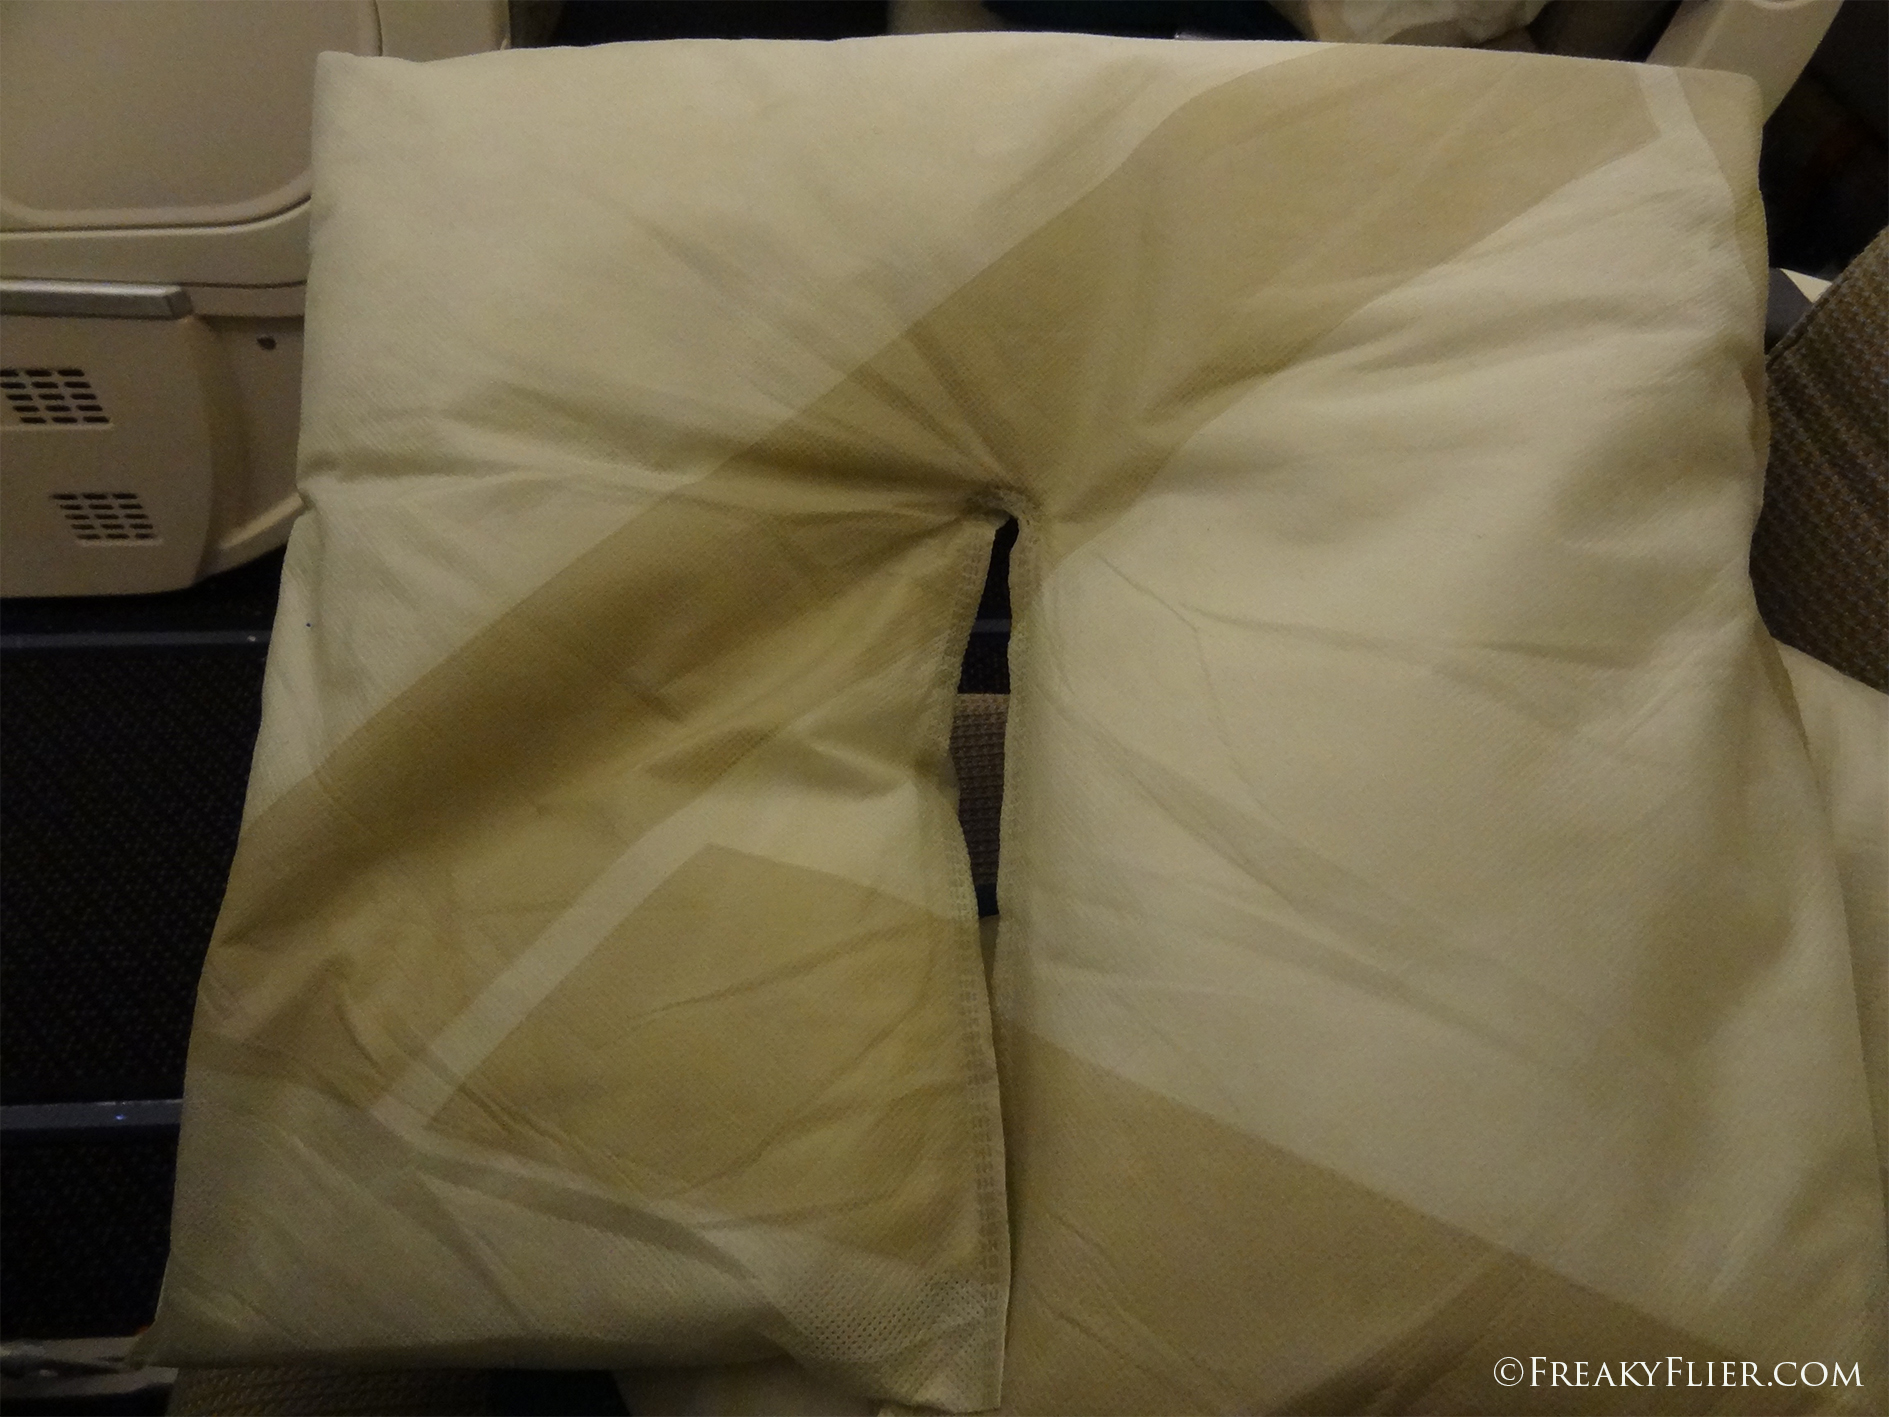 Economy Class pillow that doubles as a neck cushion